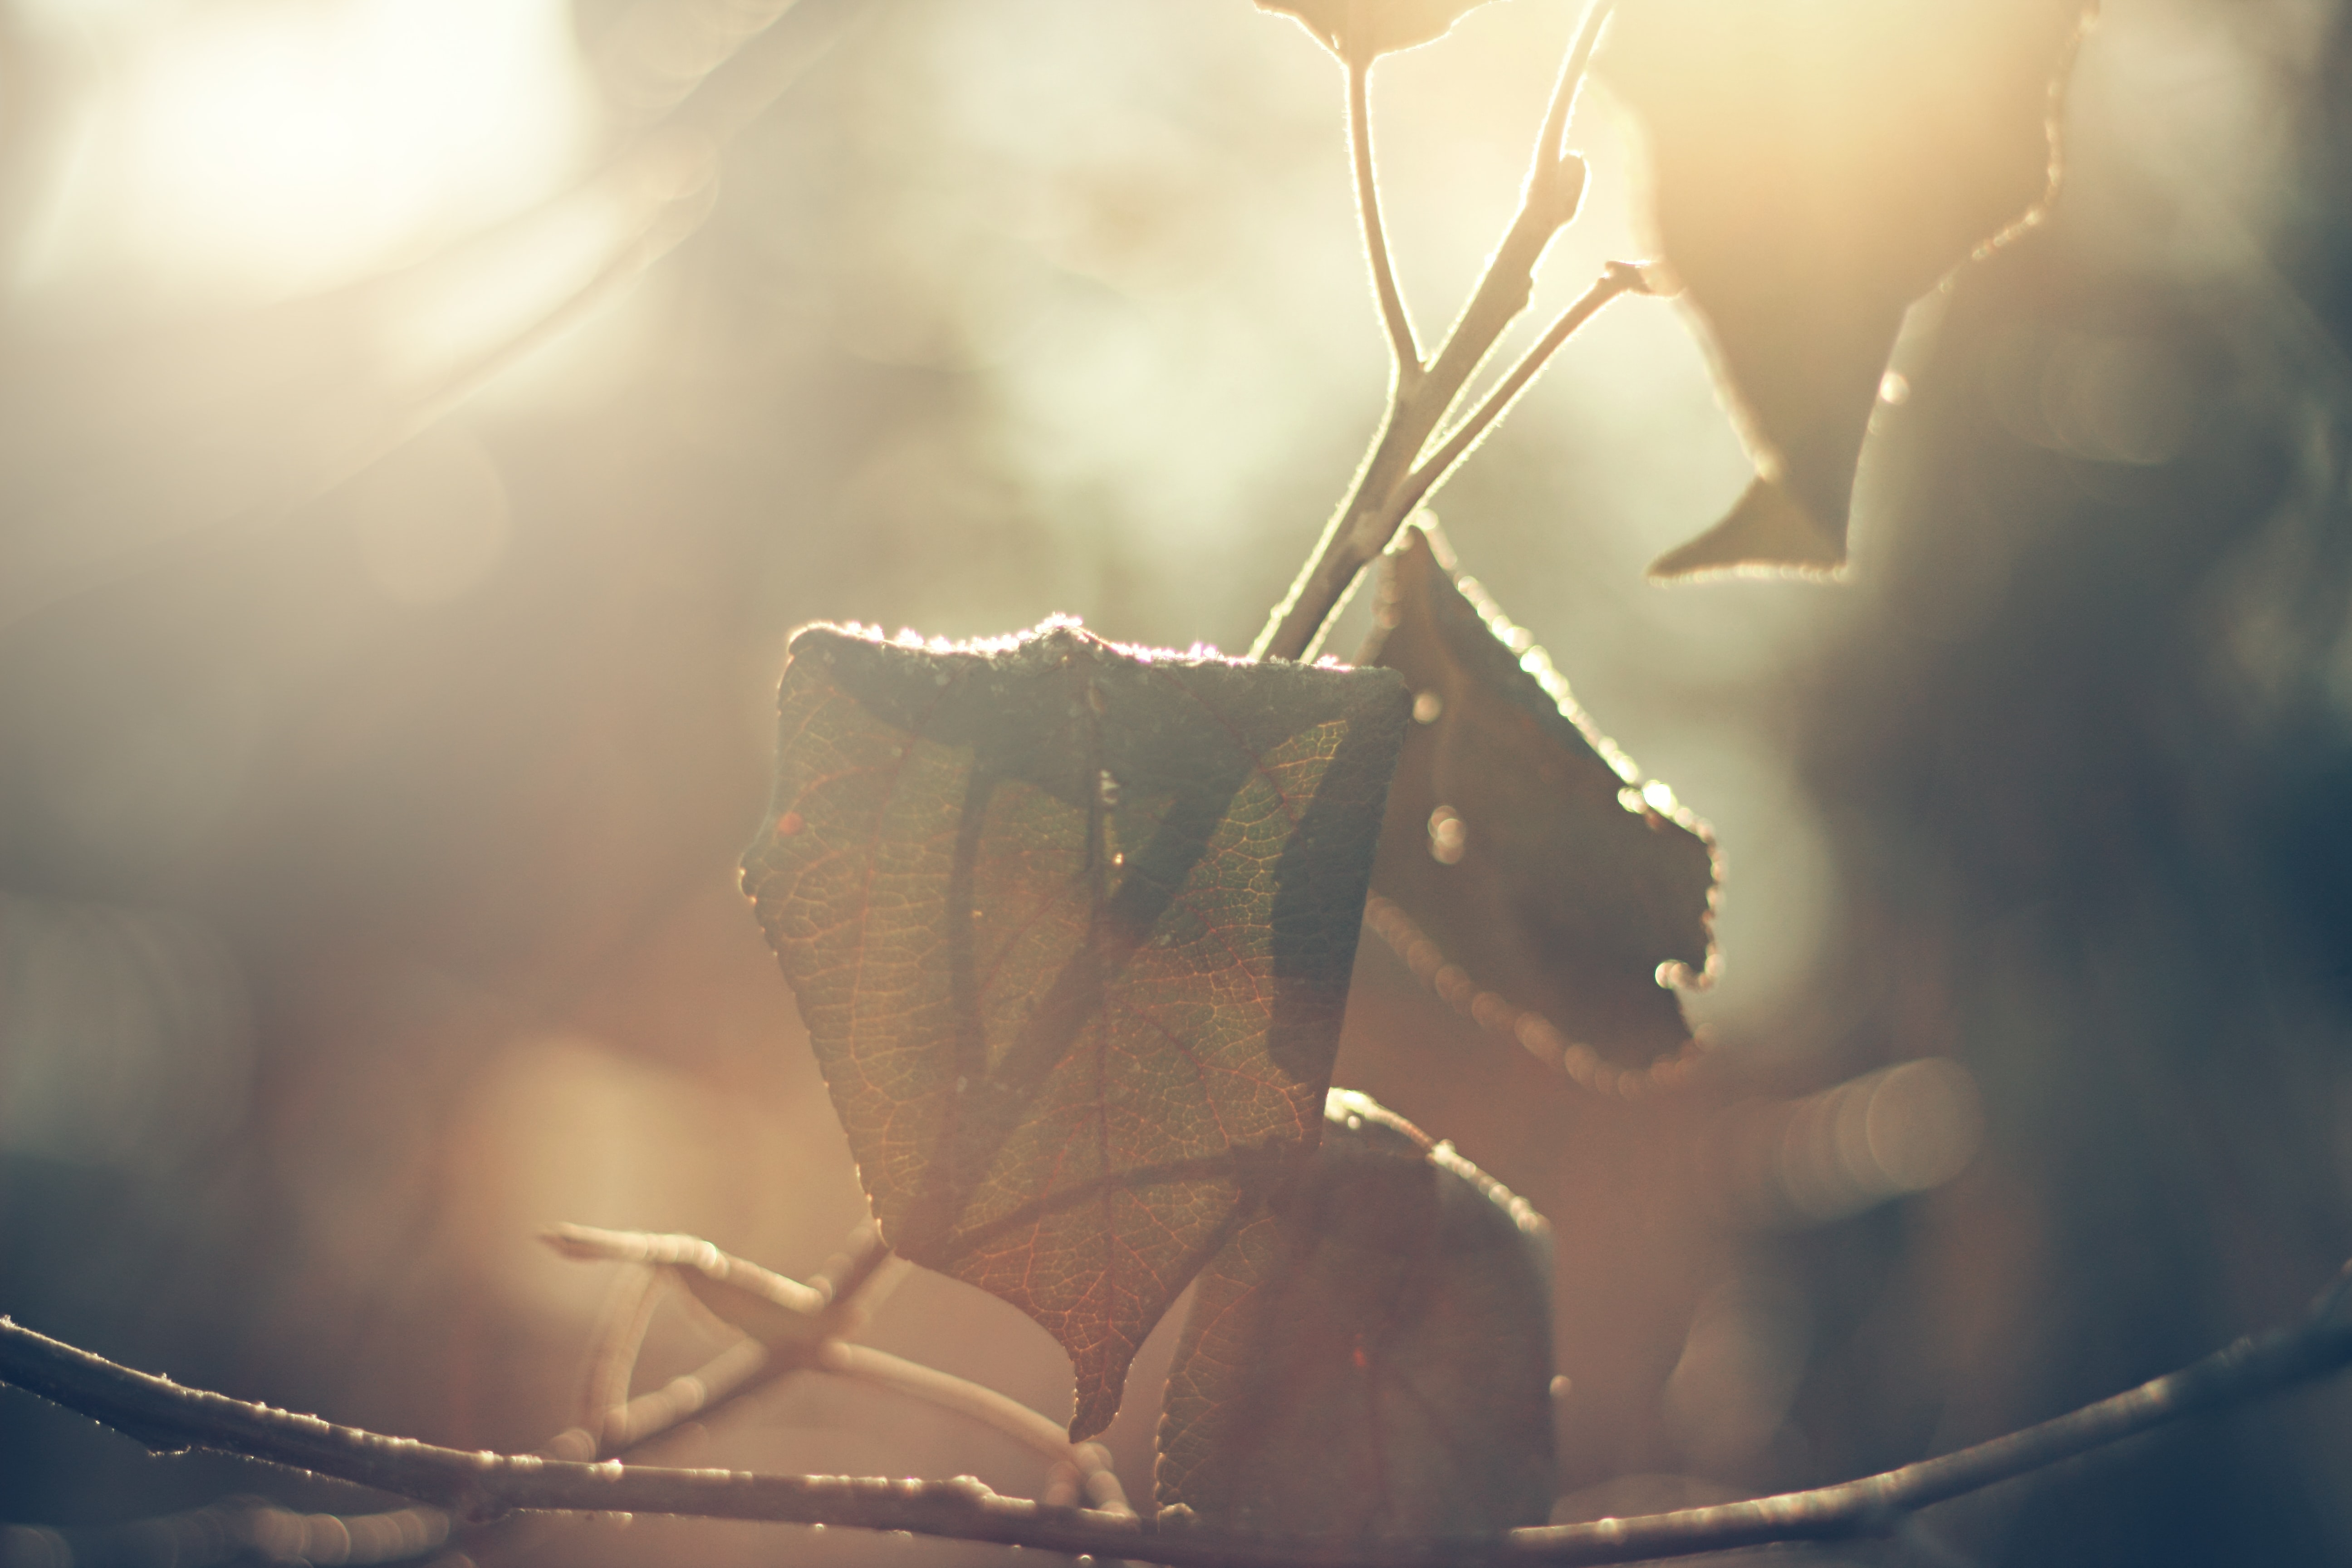 A macro shot of withering leaves in warm light